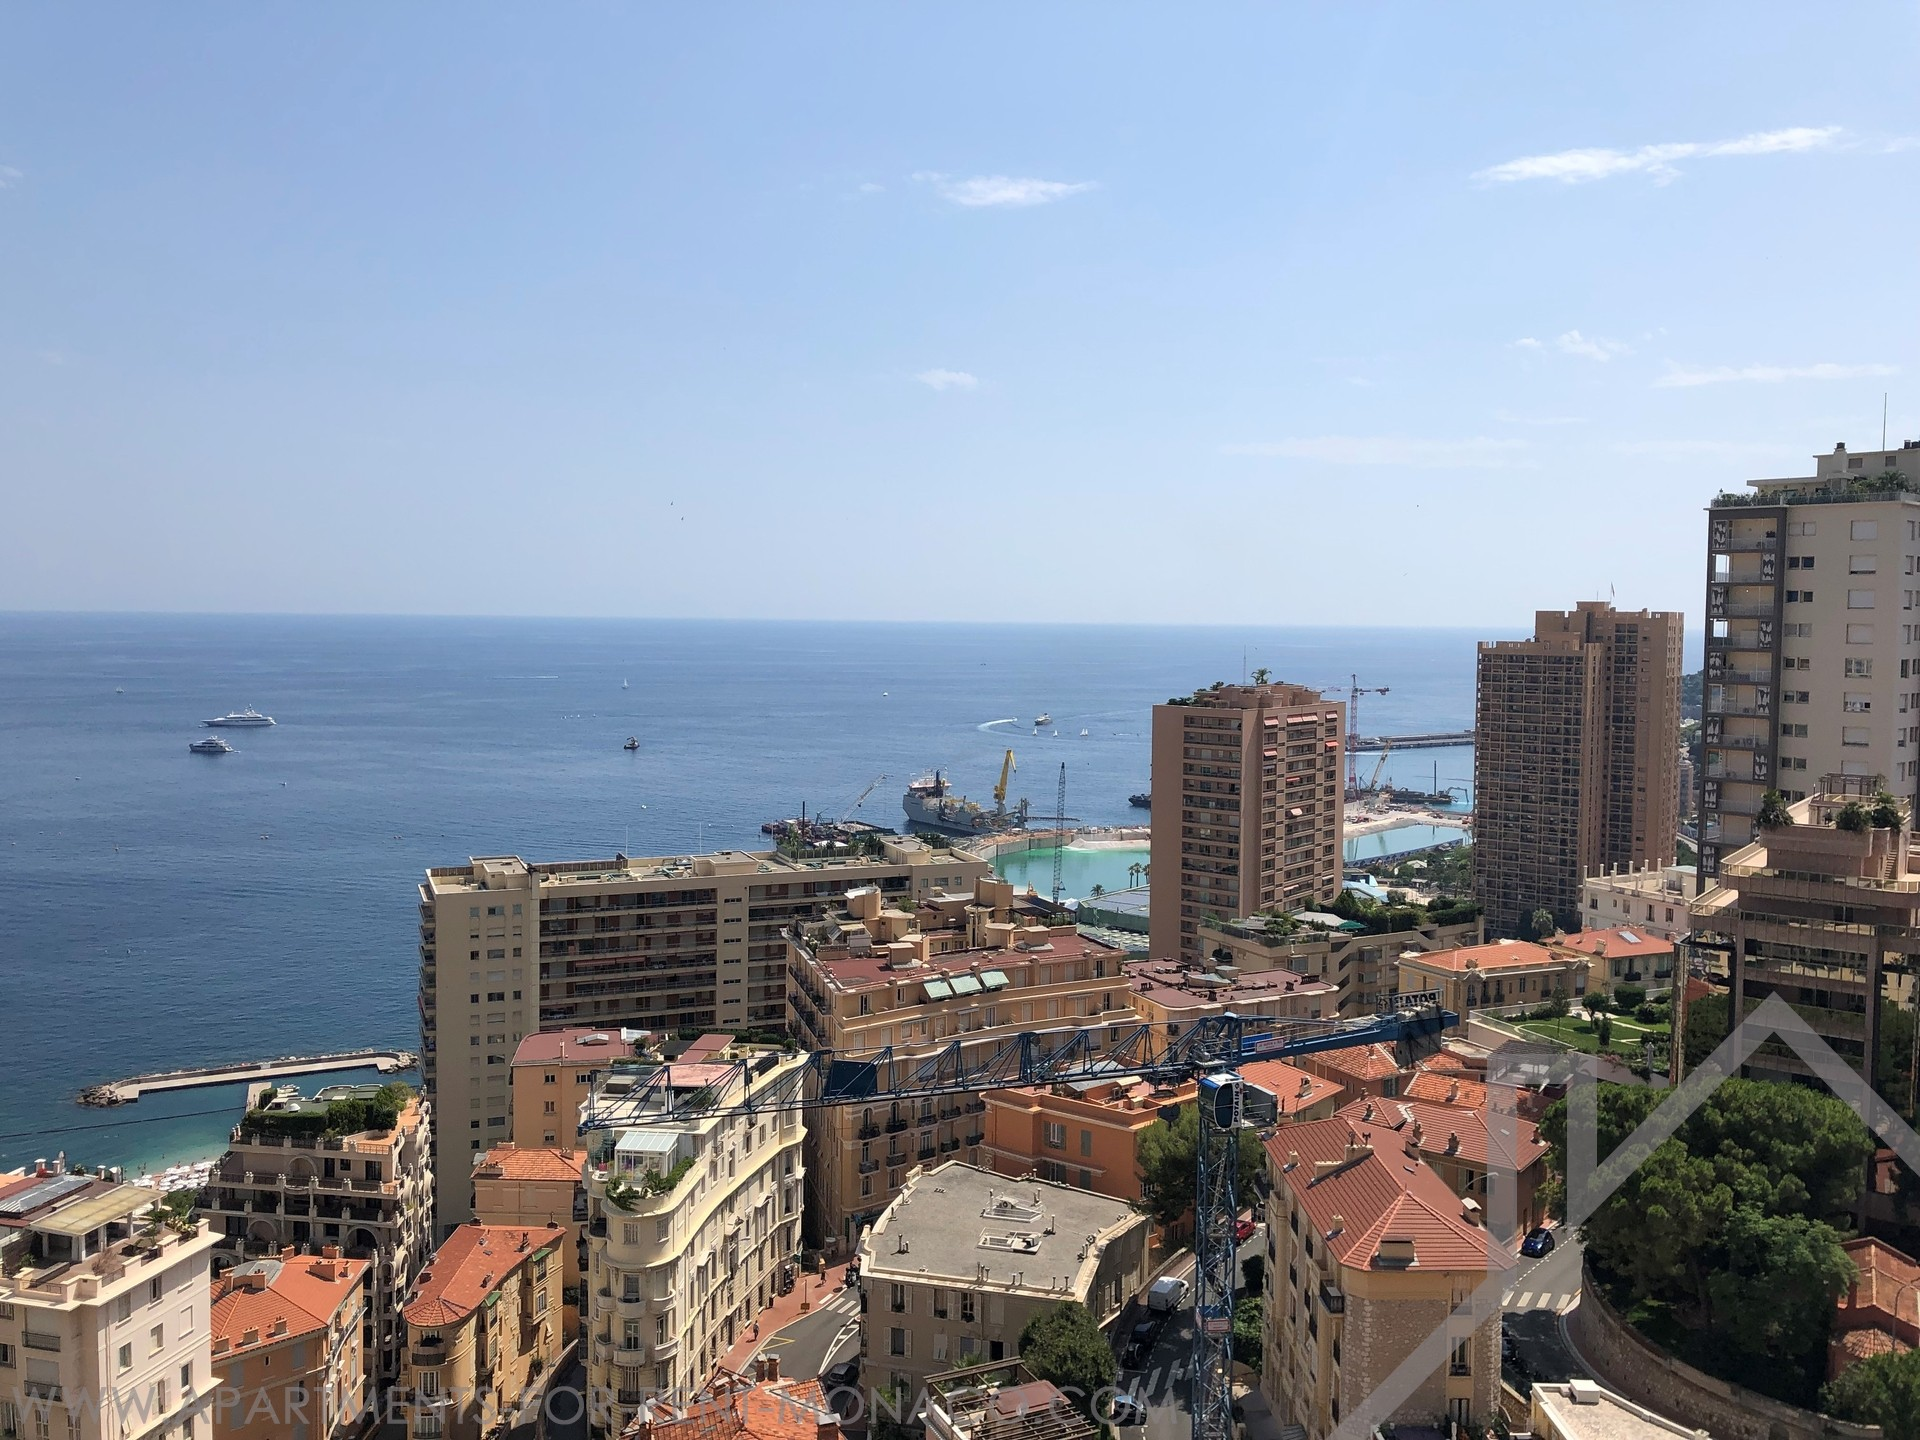 Central apartment - Apartments for rent in Monaco